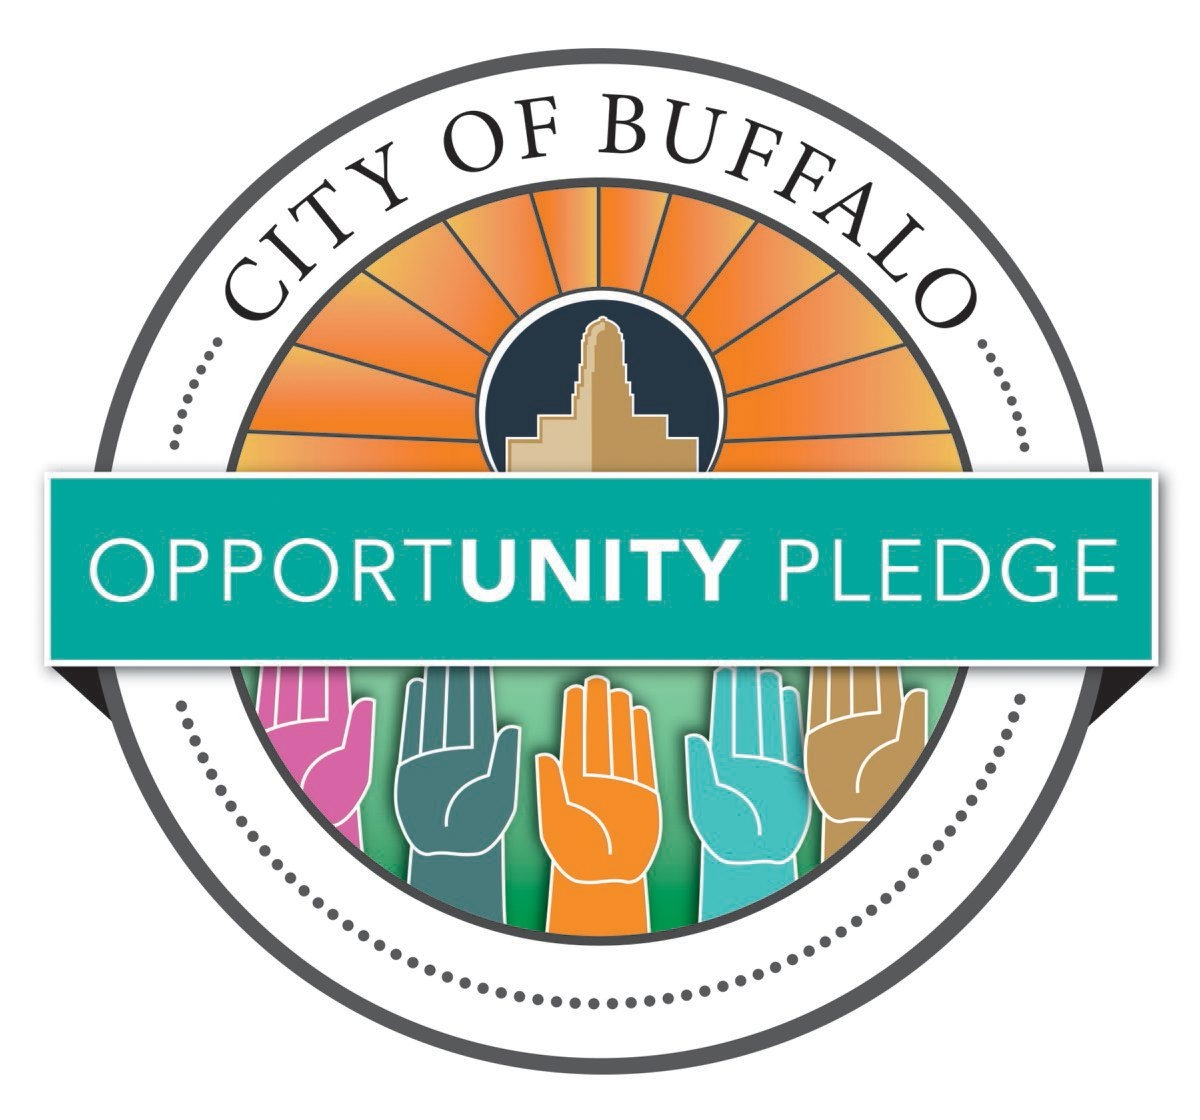 City resident Erin Harris won Opportunity Pledge contest with this design.